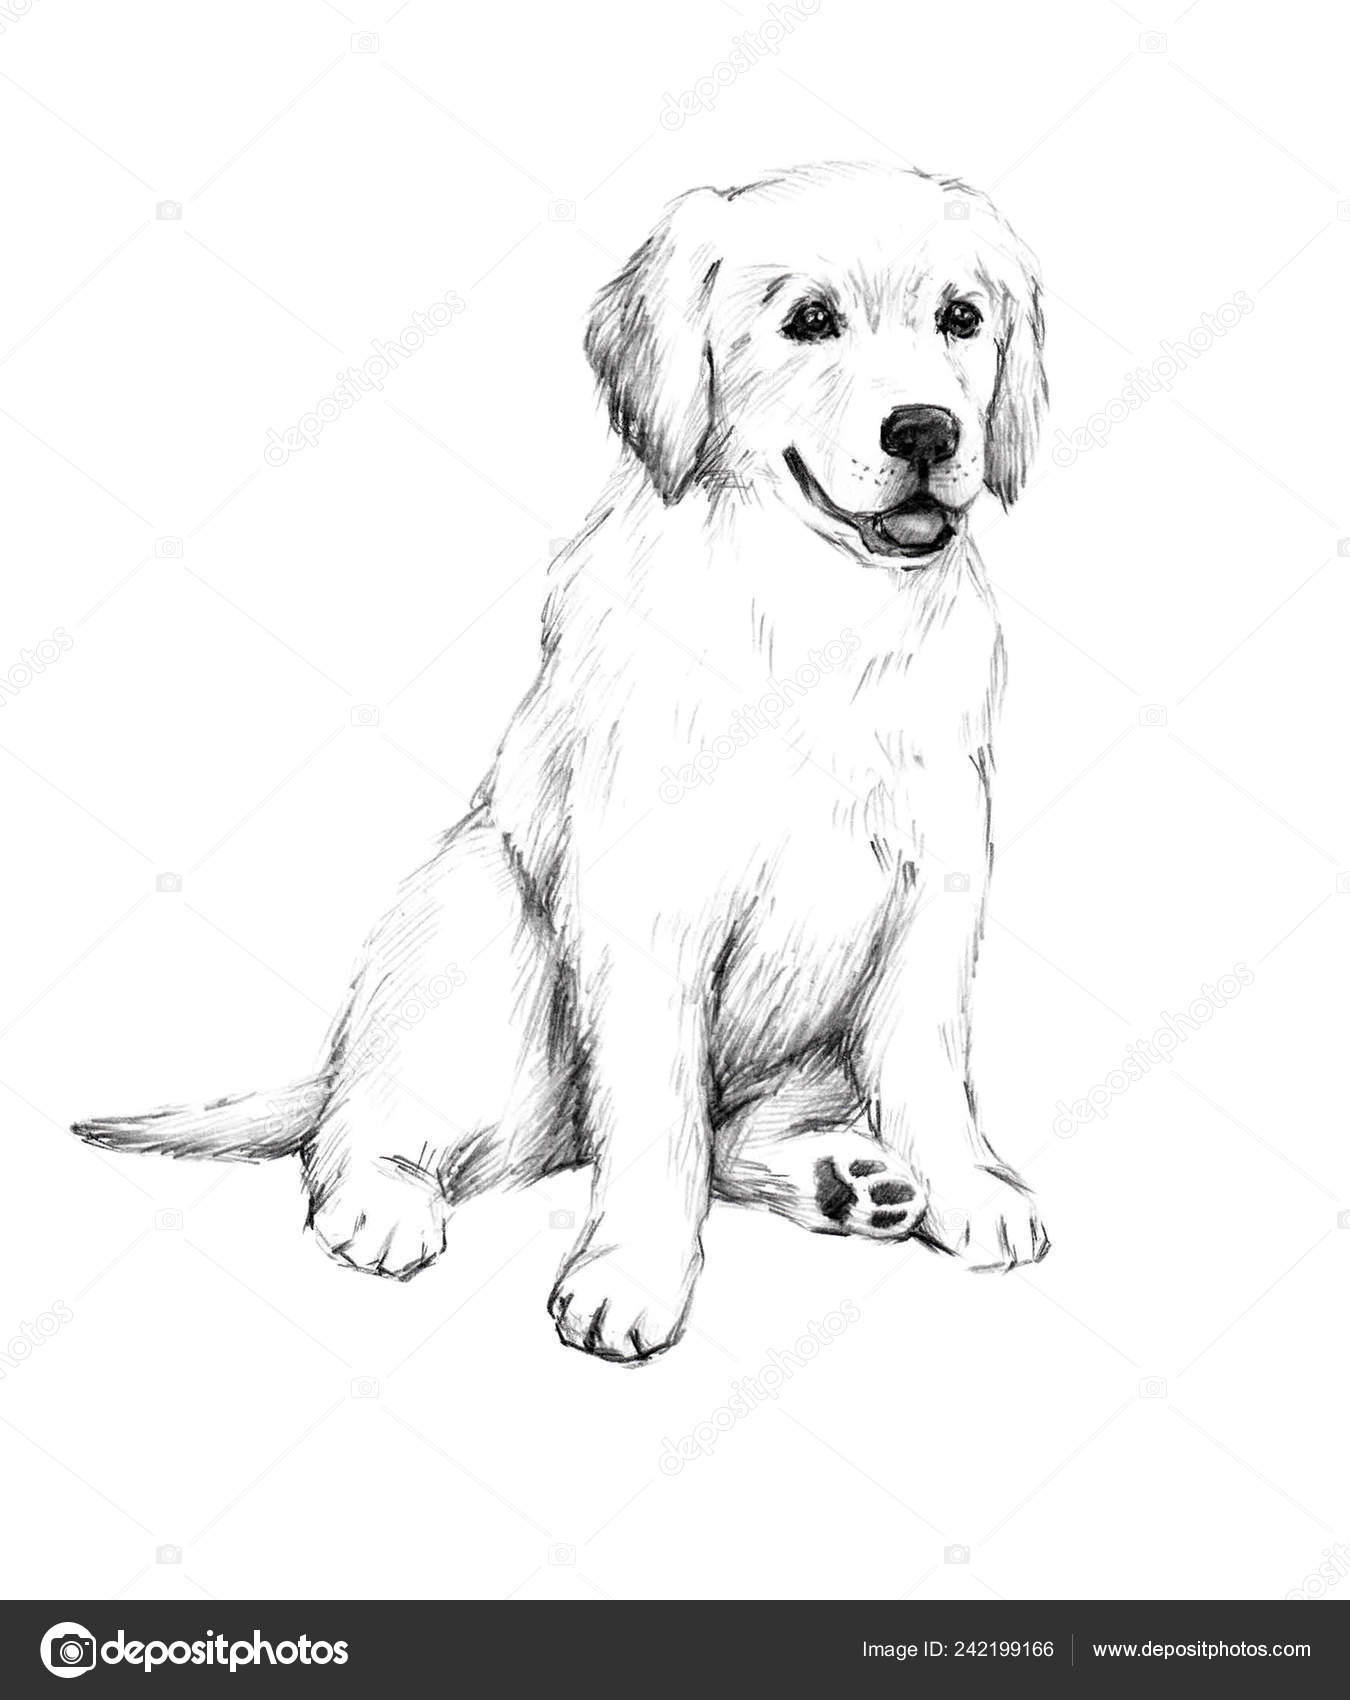 Drawings Cute Little Puppy Animal Sketch Pencil Drawing Dog Cute Little Puppy Illustration Pet Stock Photo C Chepurkoekaterina 242199166